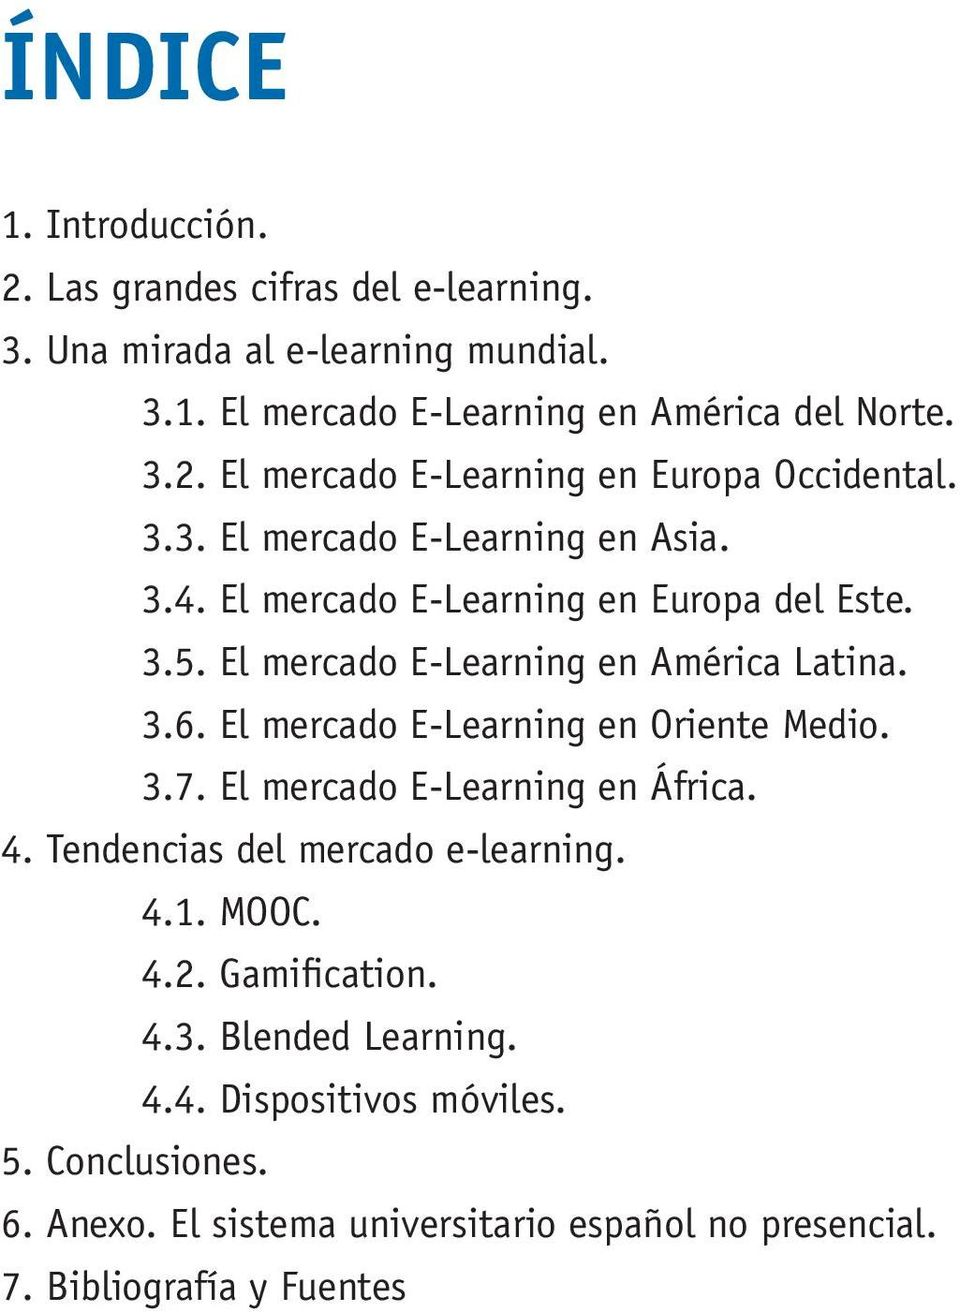 El mercado E-Learning en Oriente Medio. 3.7. El mercado E-Learning en África. 4. Tendencias del mercado e-learning. 4.1. MOOC. 4.2. Gamification. 4.3. Blended Learning.